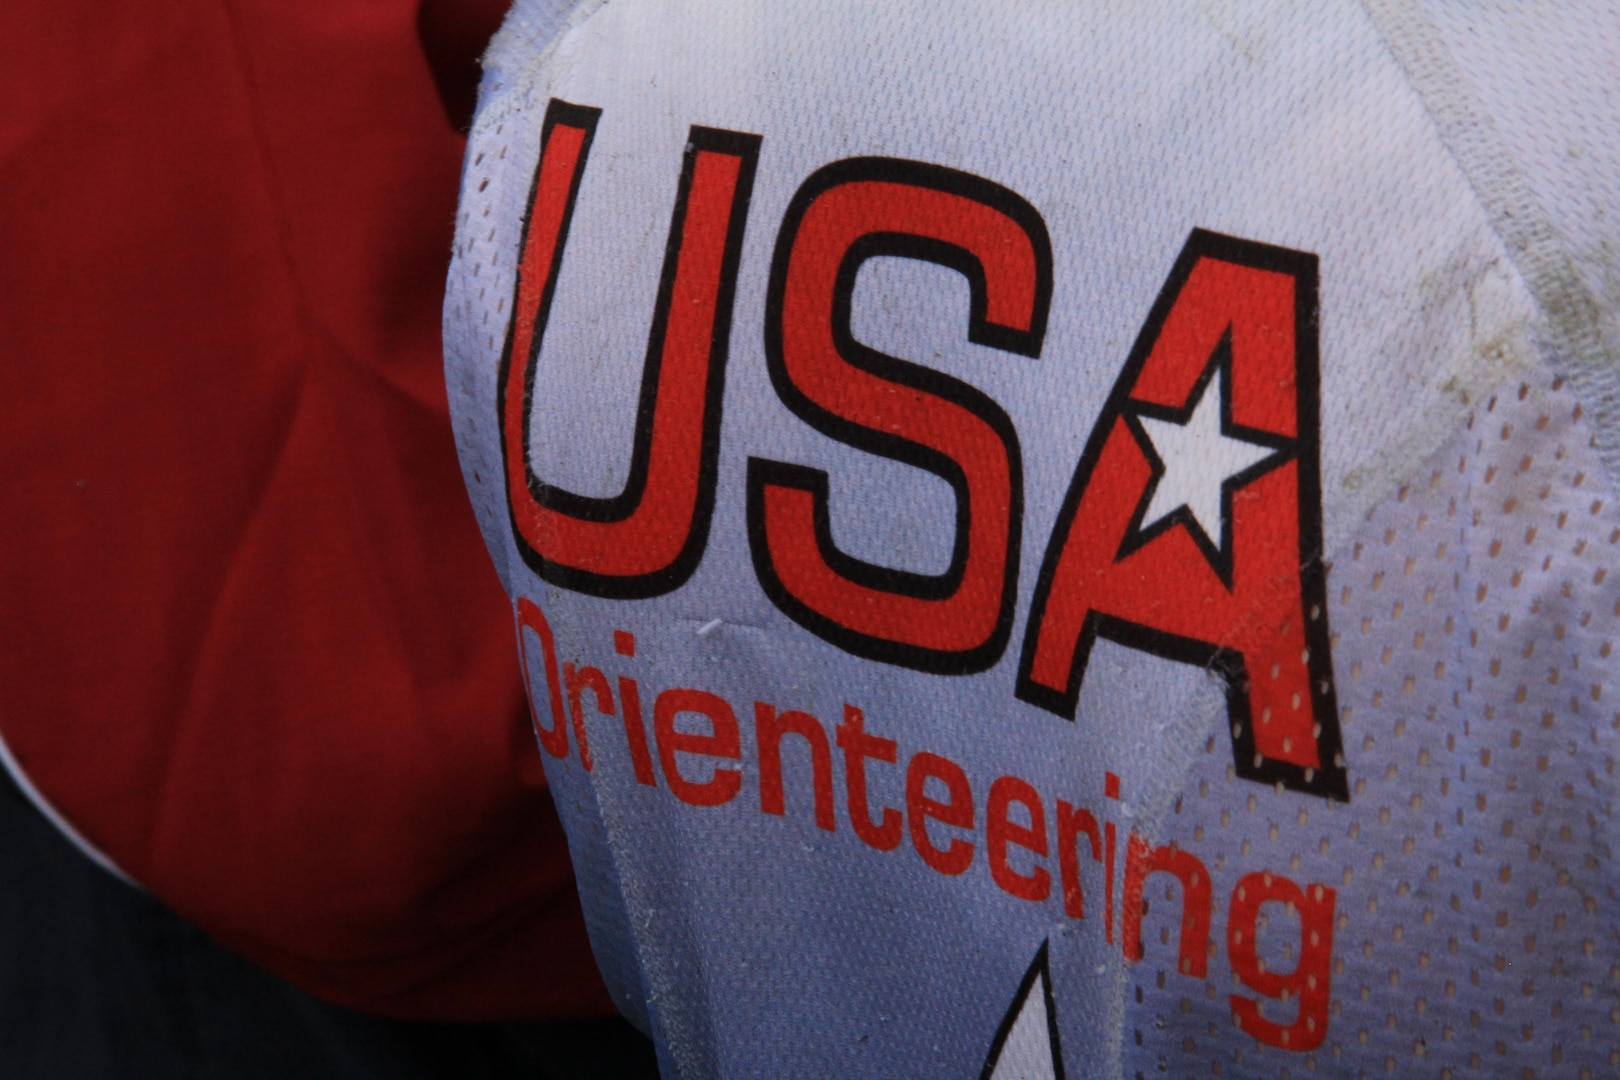 Team USA is back after a 14-year hiatus to compete at the 2013 CISM World Orienteering Military Championship hosted by the Swedish Armed Forces in Eksjo, Sweden from 26 August to 1 September.